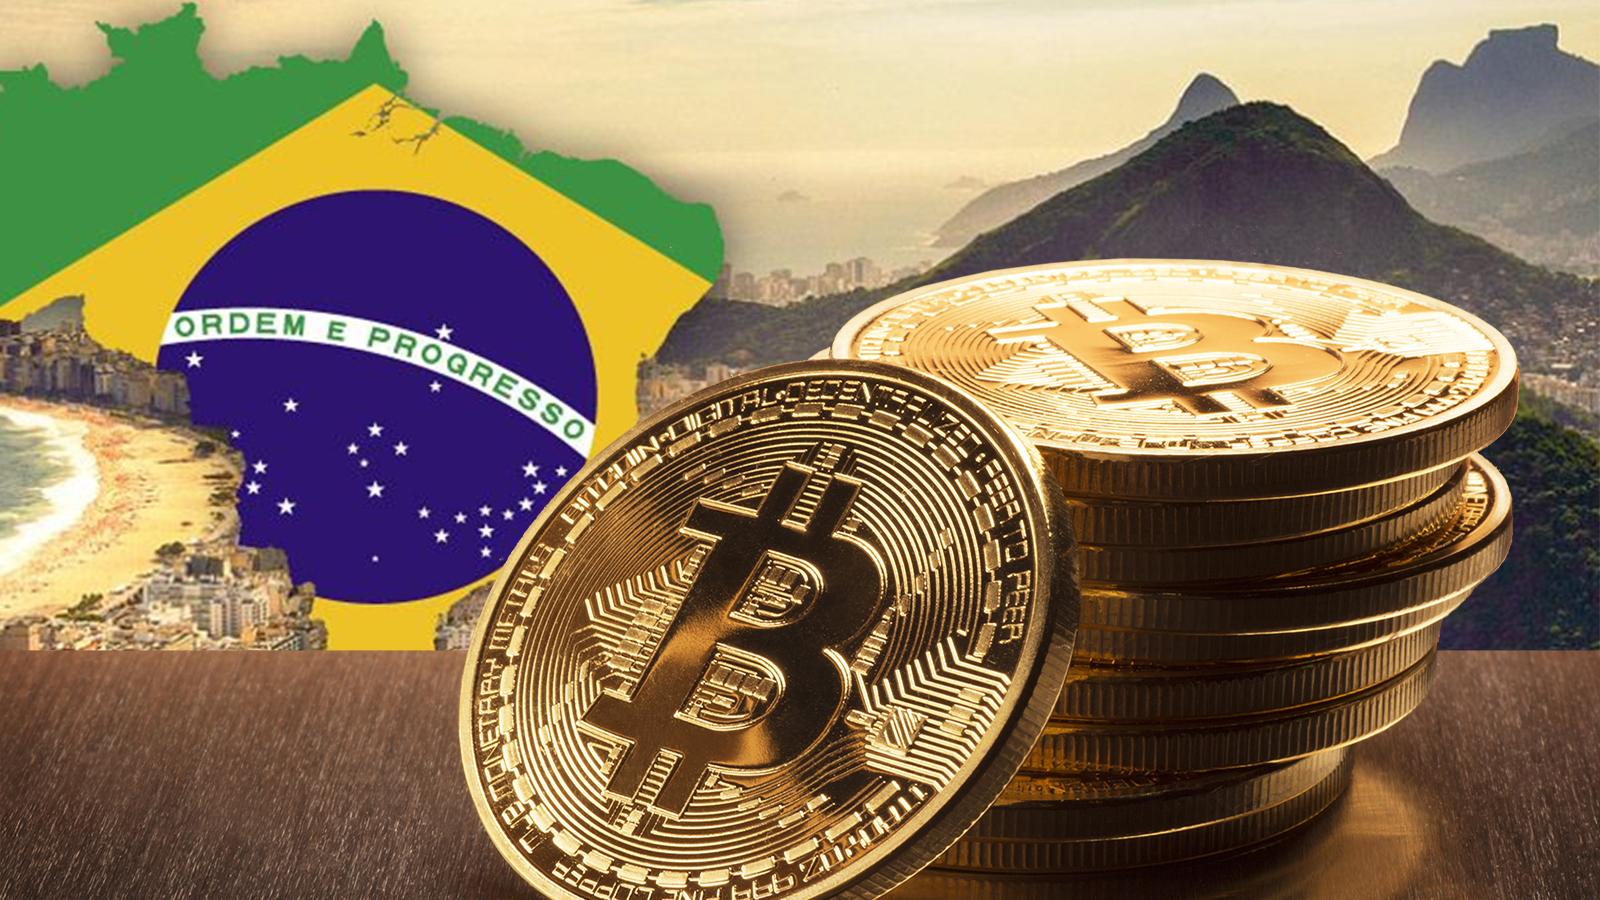 Brazil is very close to the official use of Bitcoin as the country's legal currency